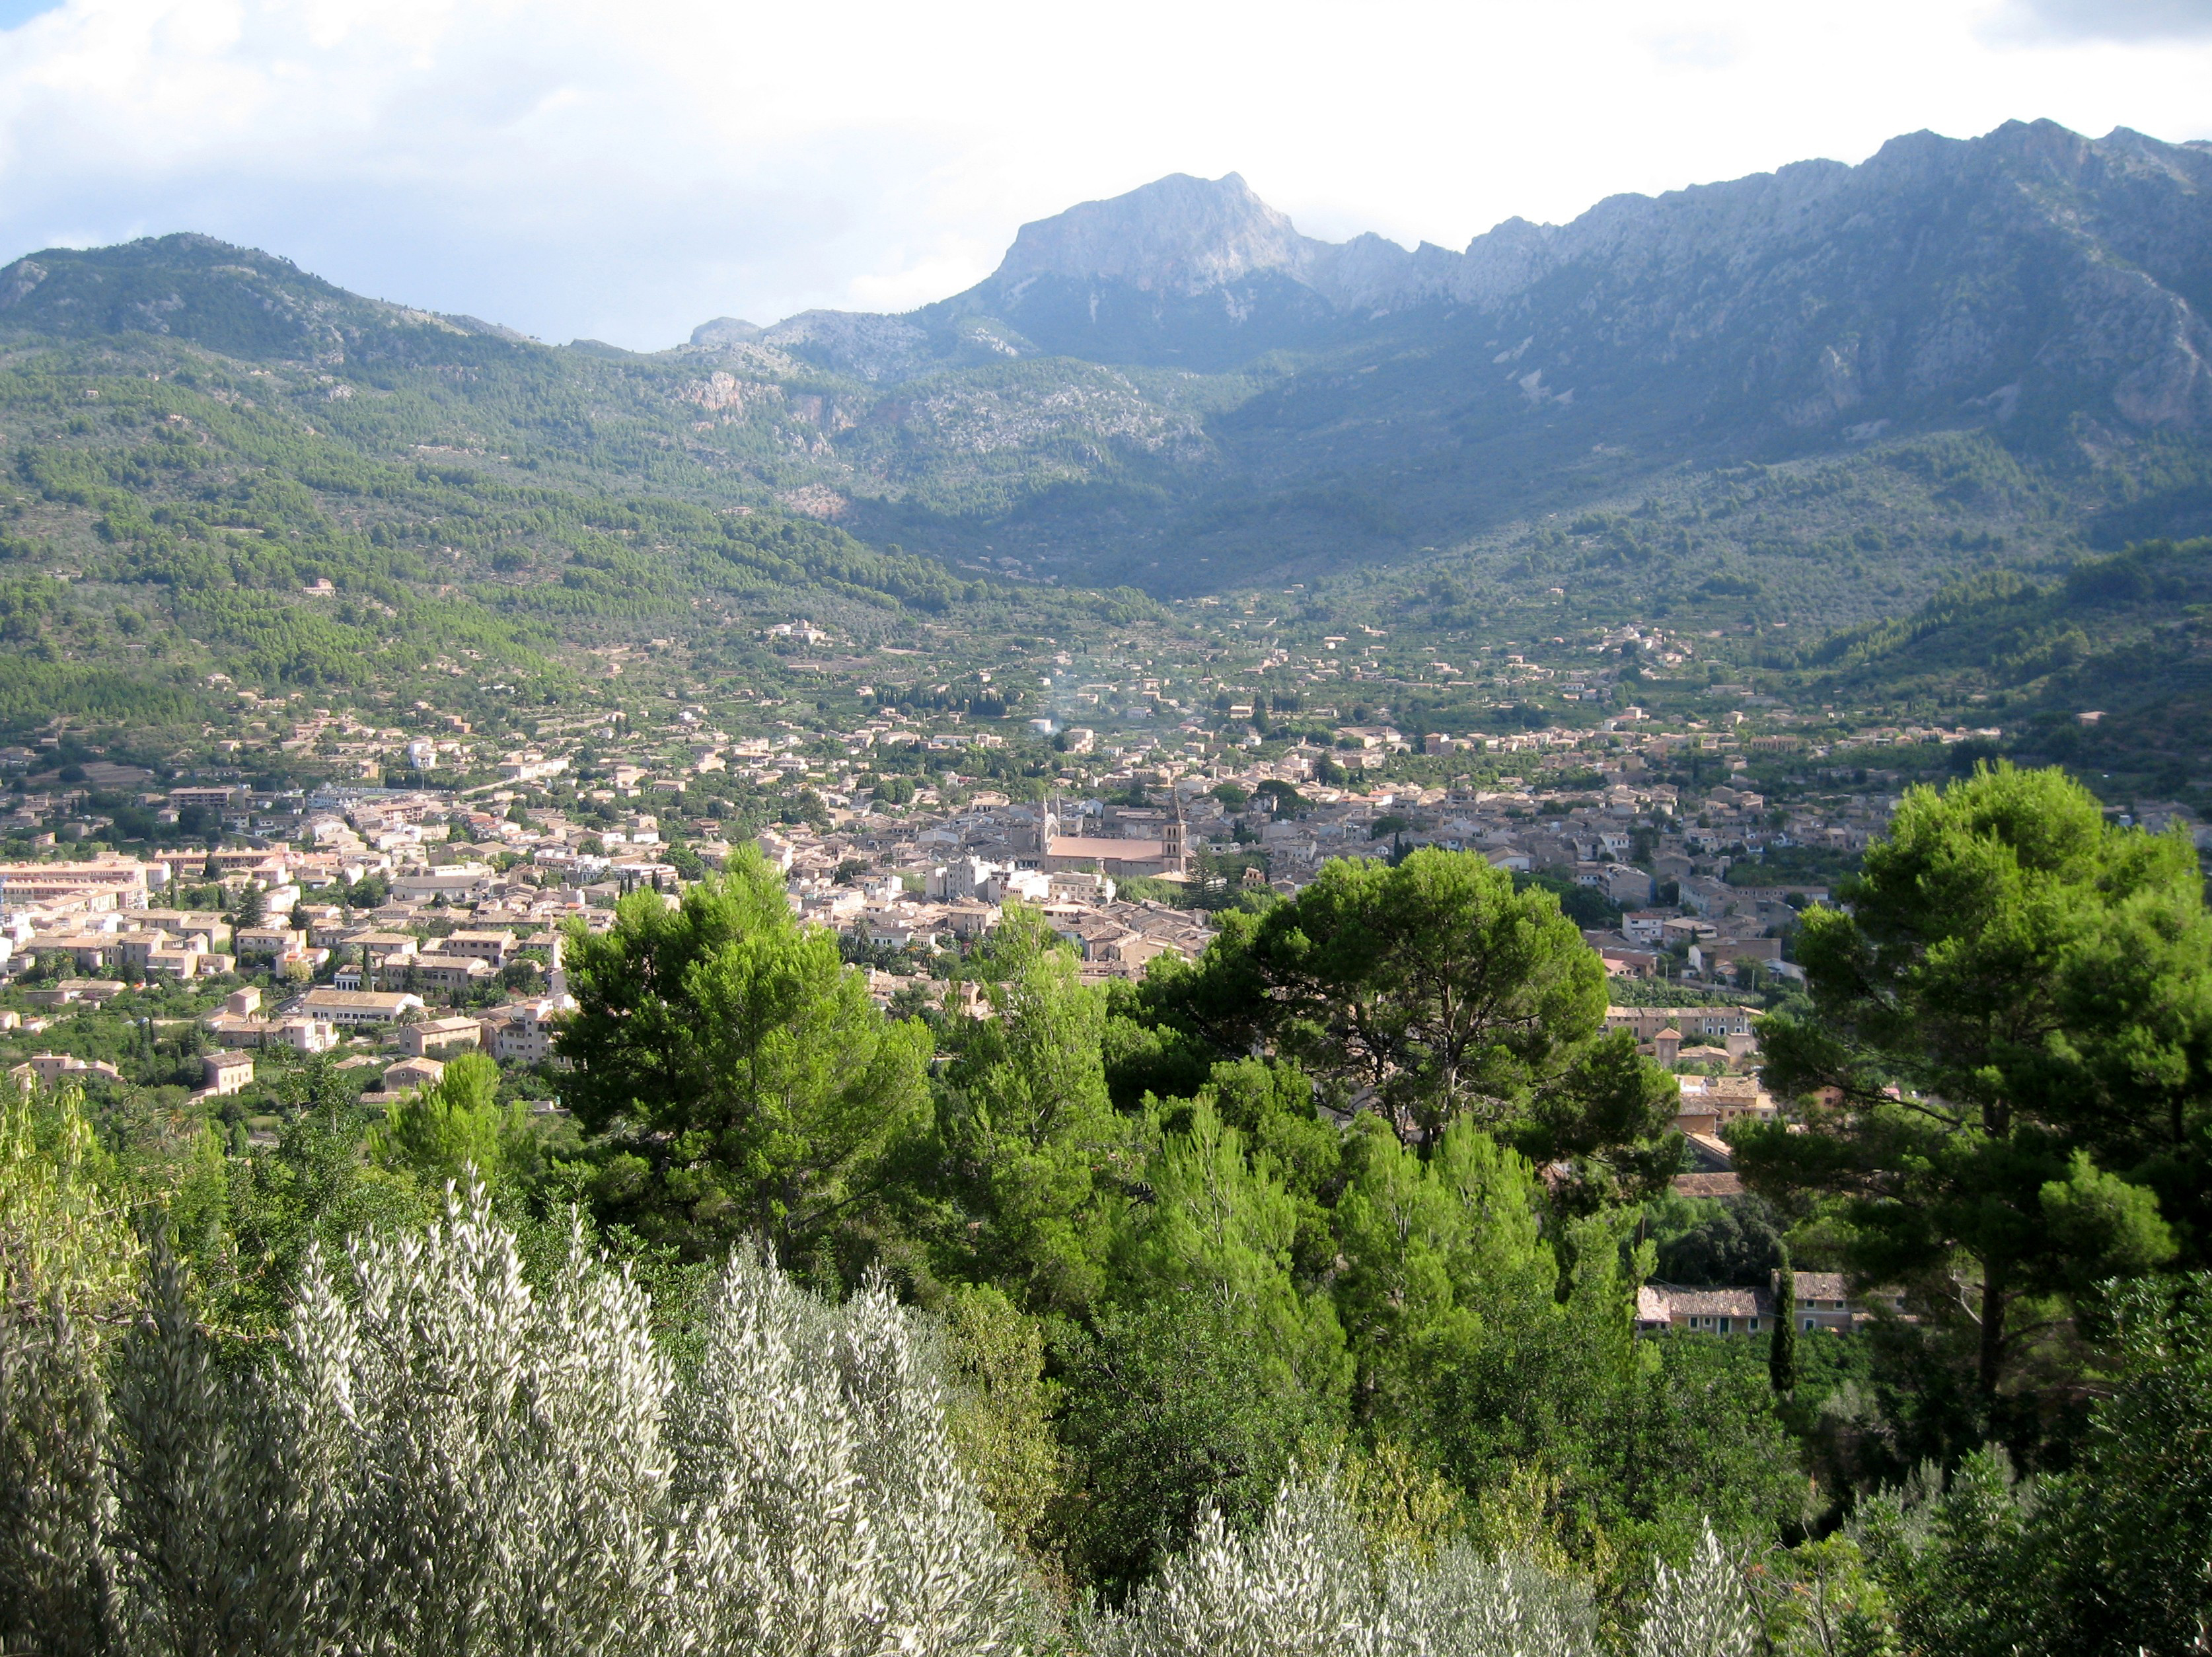 The town of Sller in Majorca